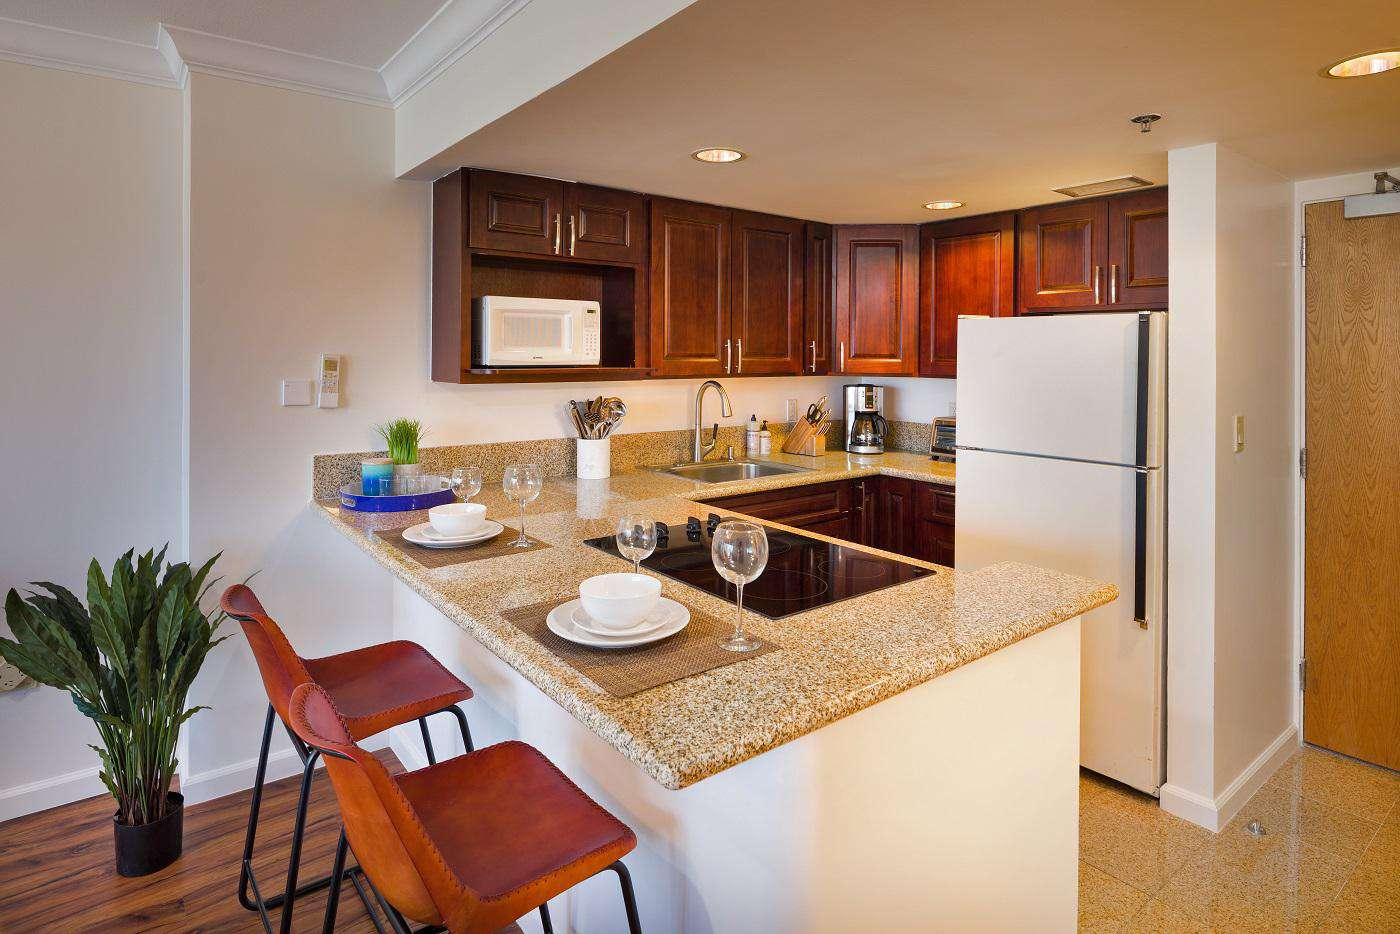 Fully Equipped Kitchen with Granite Countertops and Custom Wood Cabinets